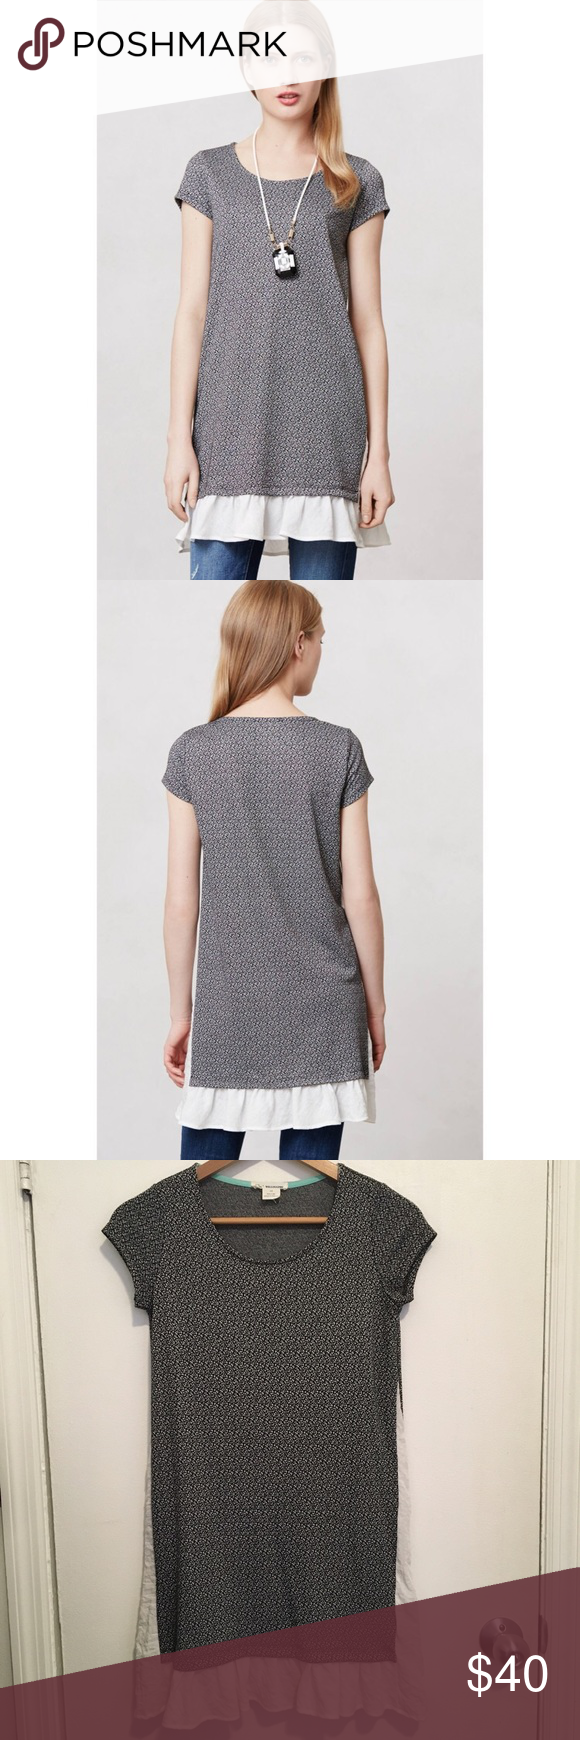 """Anthropologie Fluttered Heather Tunic Excellent condition. Worn once. 16.5"""" across chest, 32.5"""" long. Can be worn as a Tunic or a dress depending on your height. Anthropologie Tops Tunics"""